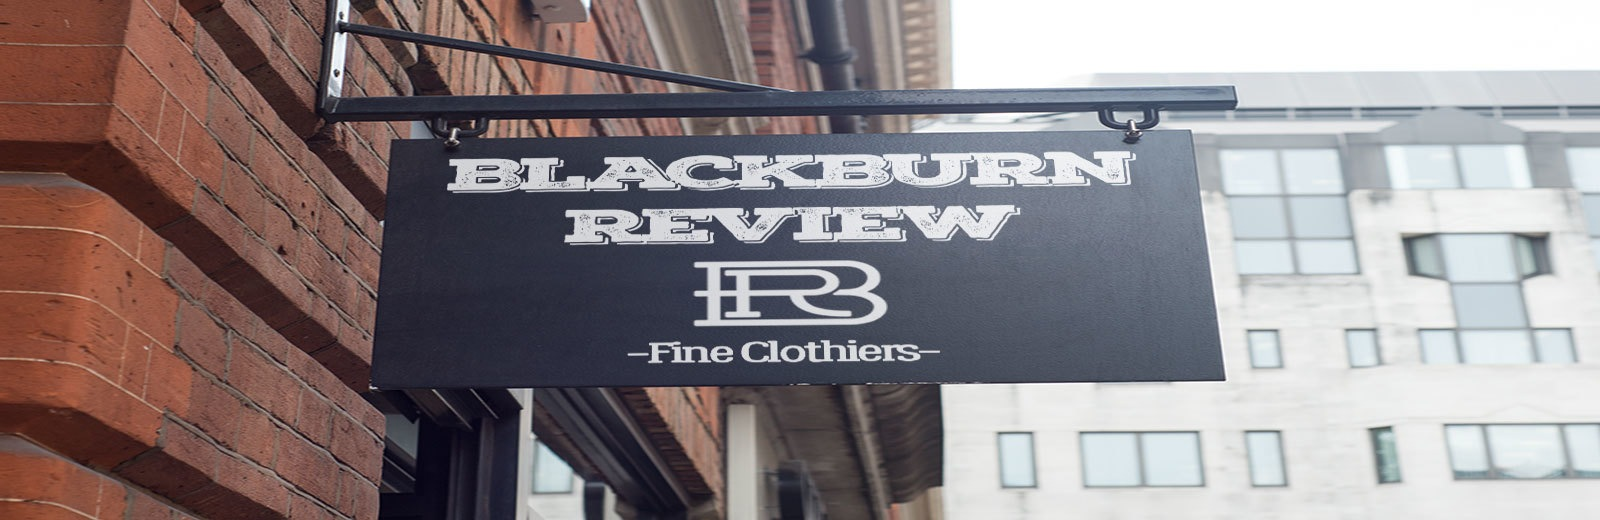 Blackburn Review Store